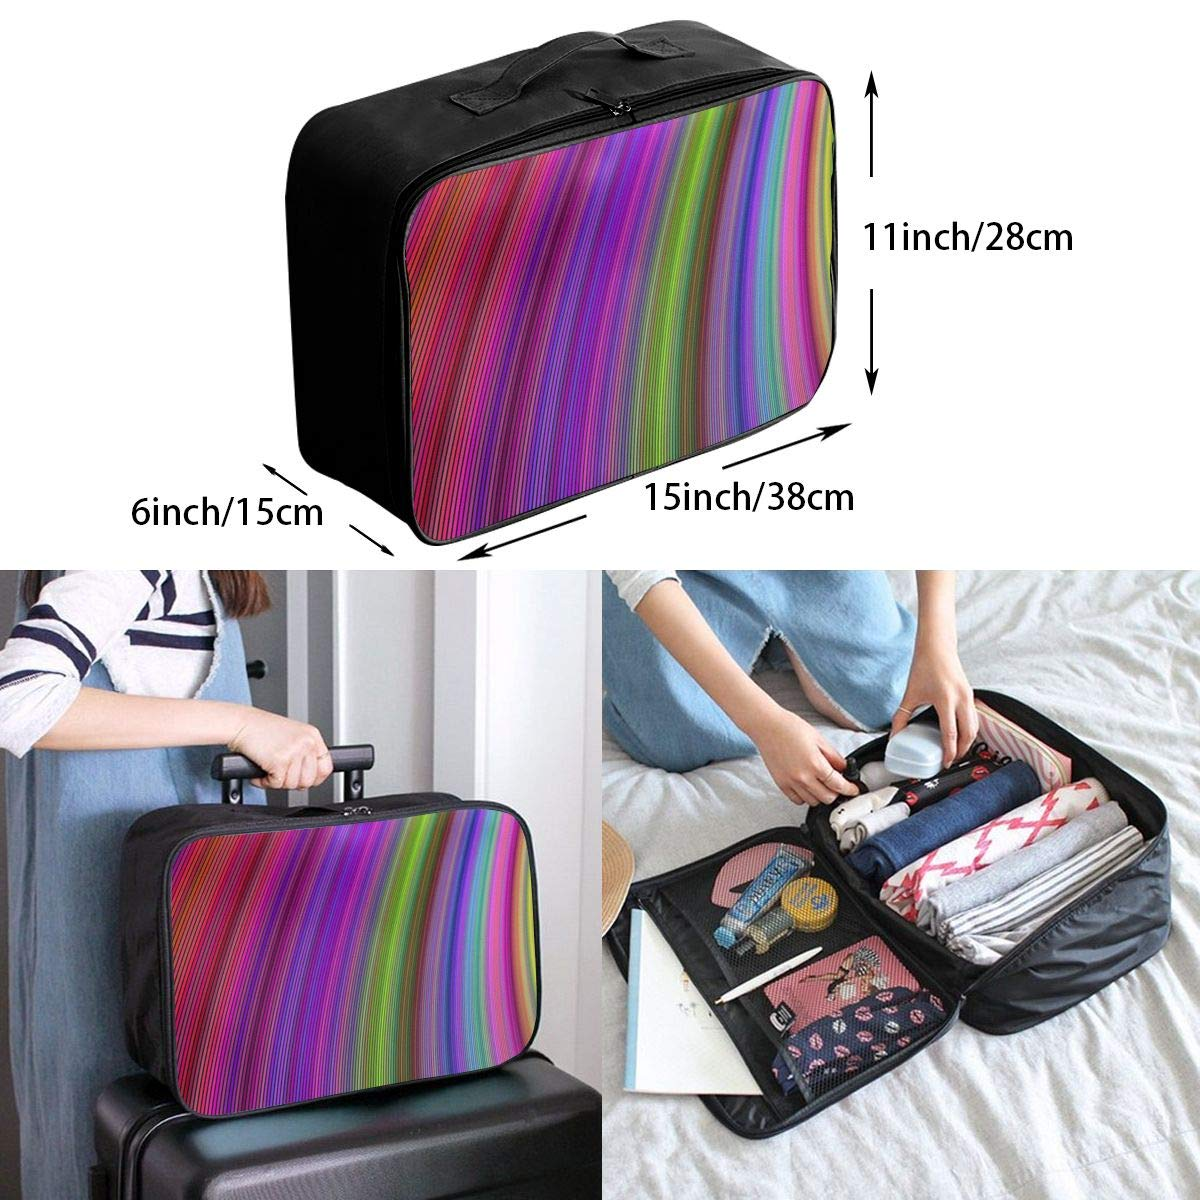 Multi-color Intersecting Line Art Travel Lightweight Waterproof Foldable Storage Carry Luggage Large Capacity Portable Luggage Bag Duffel Bag